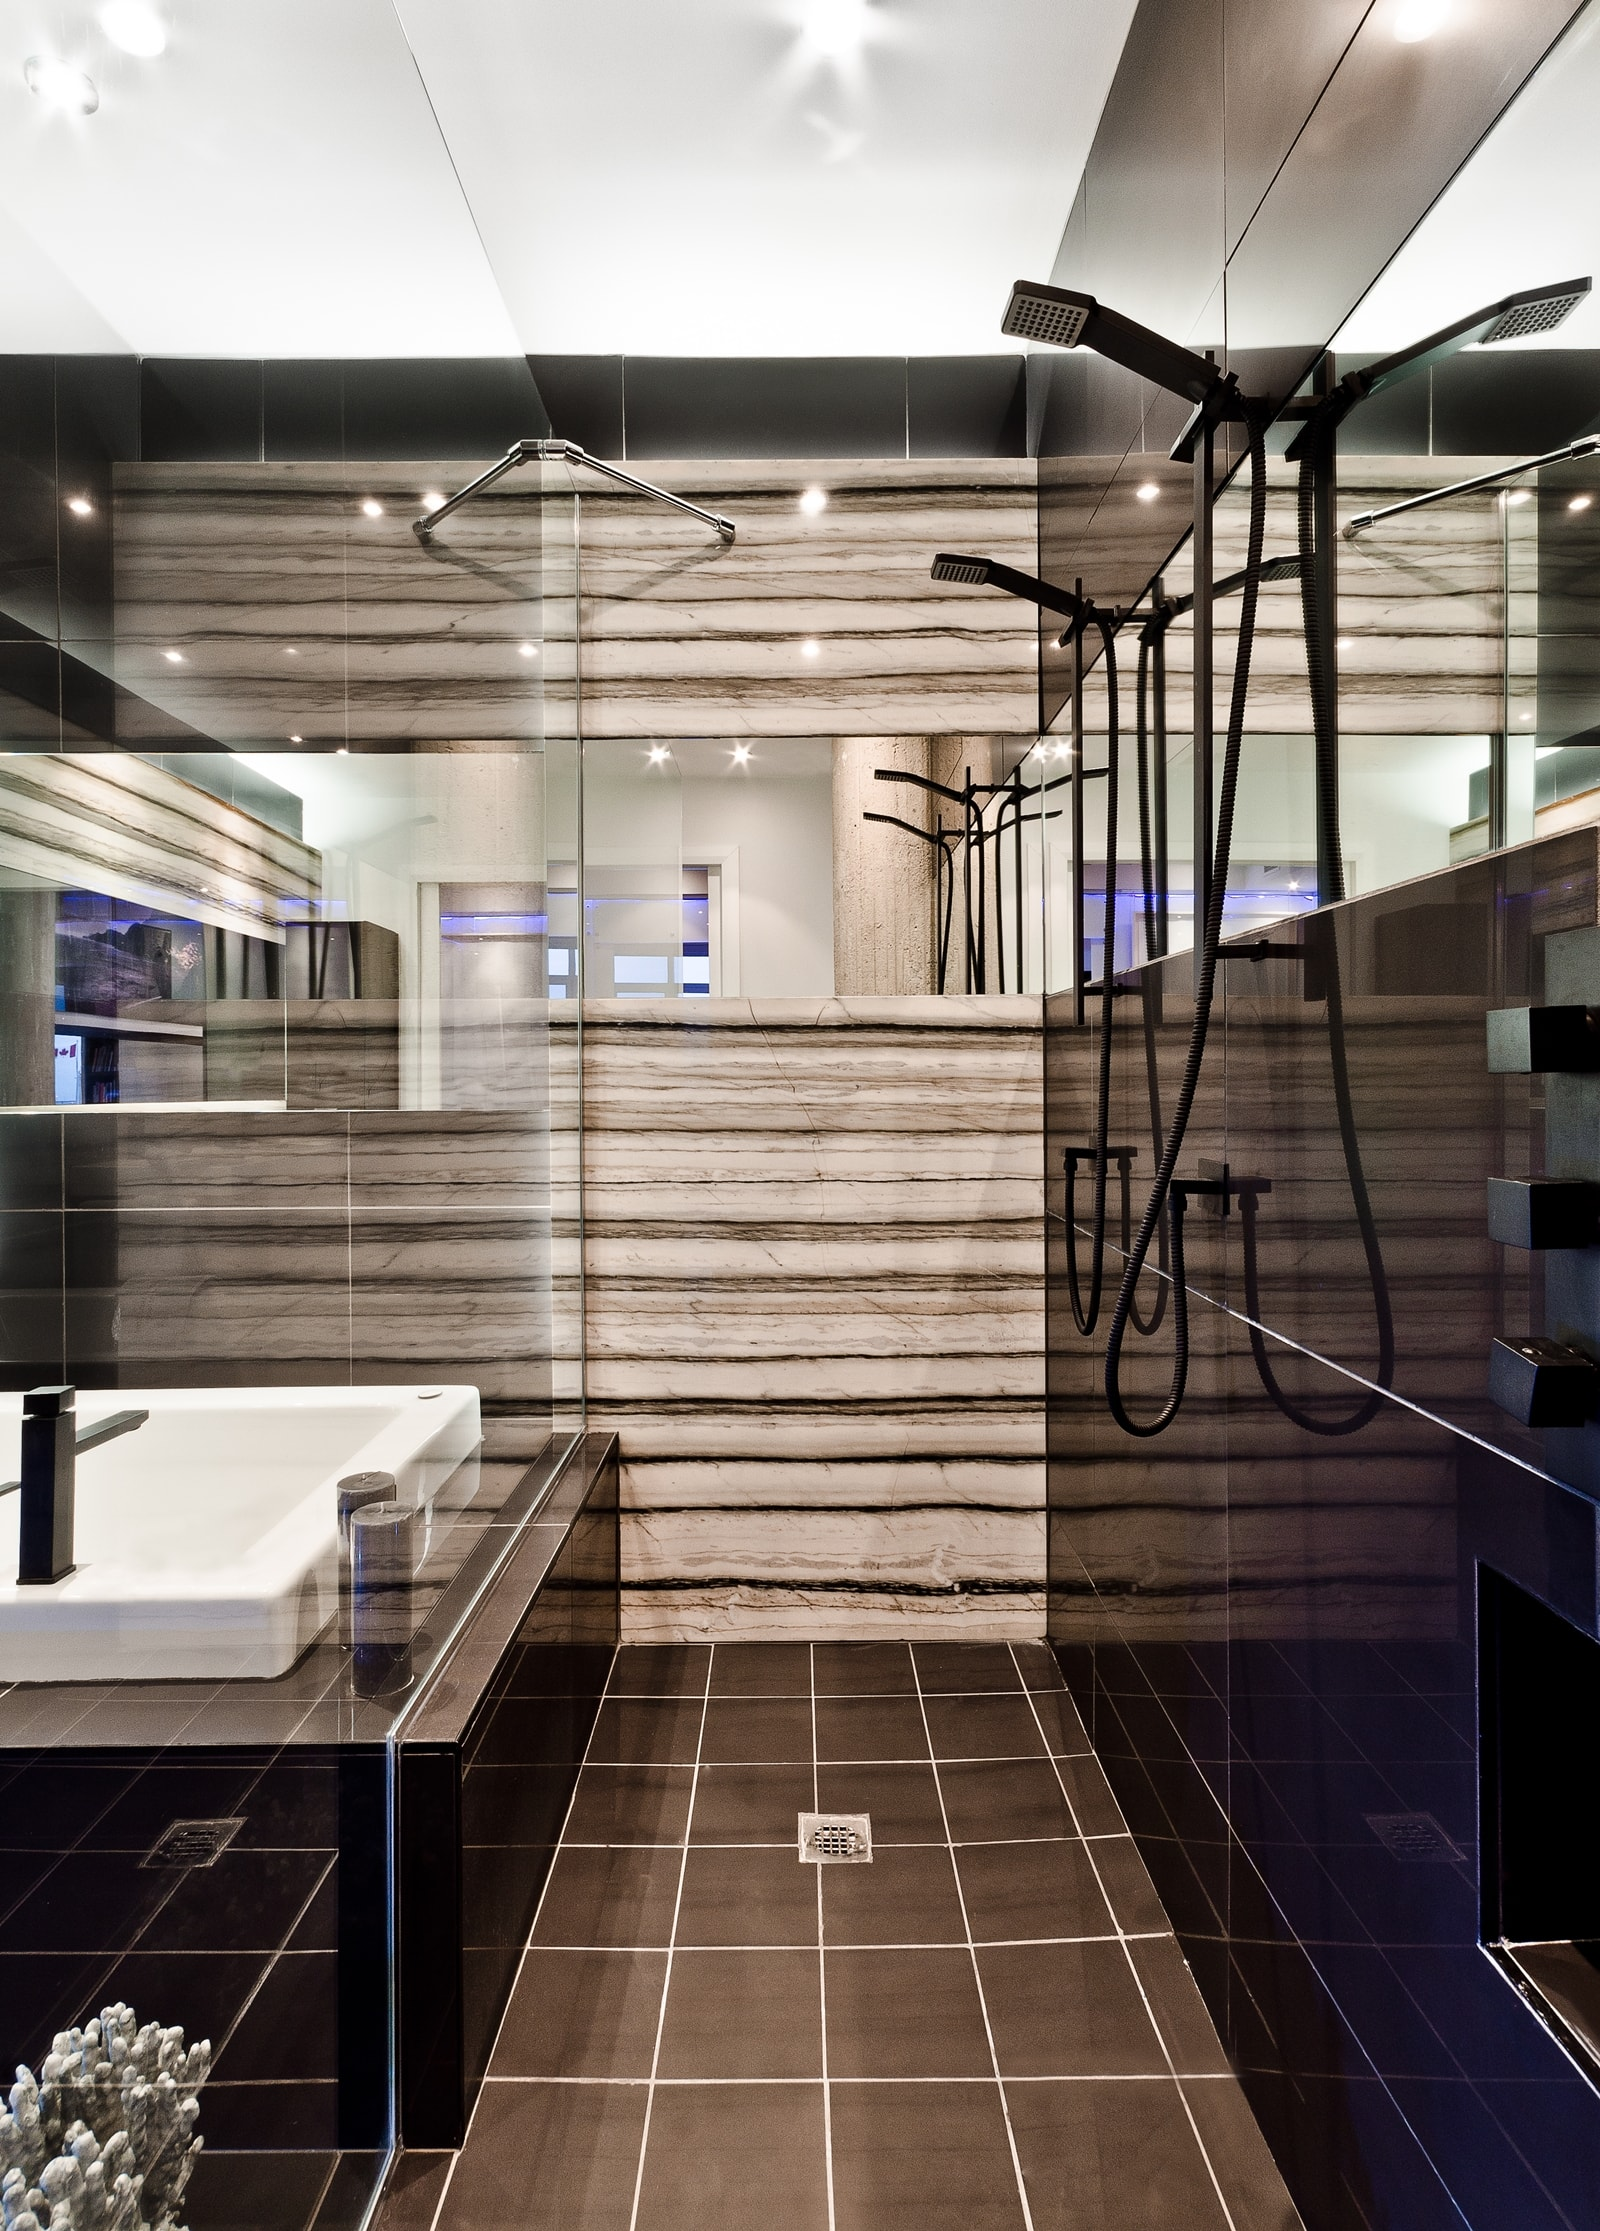 Dark modern bathroom design by ActDesign